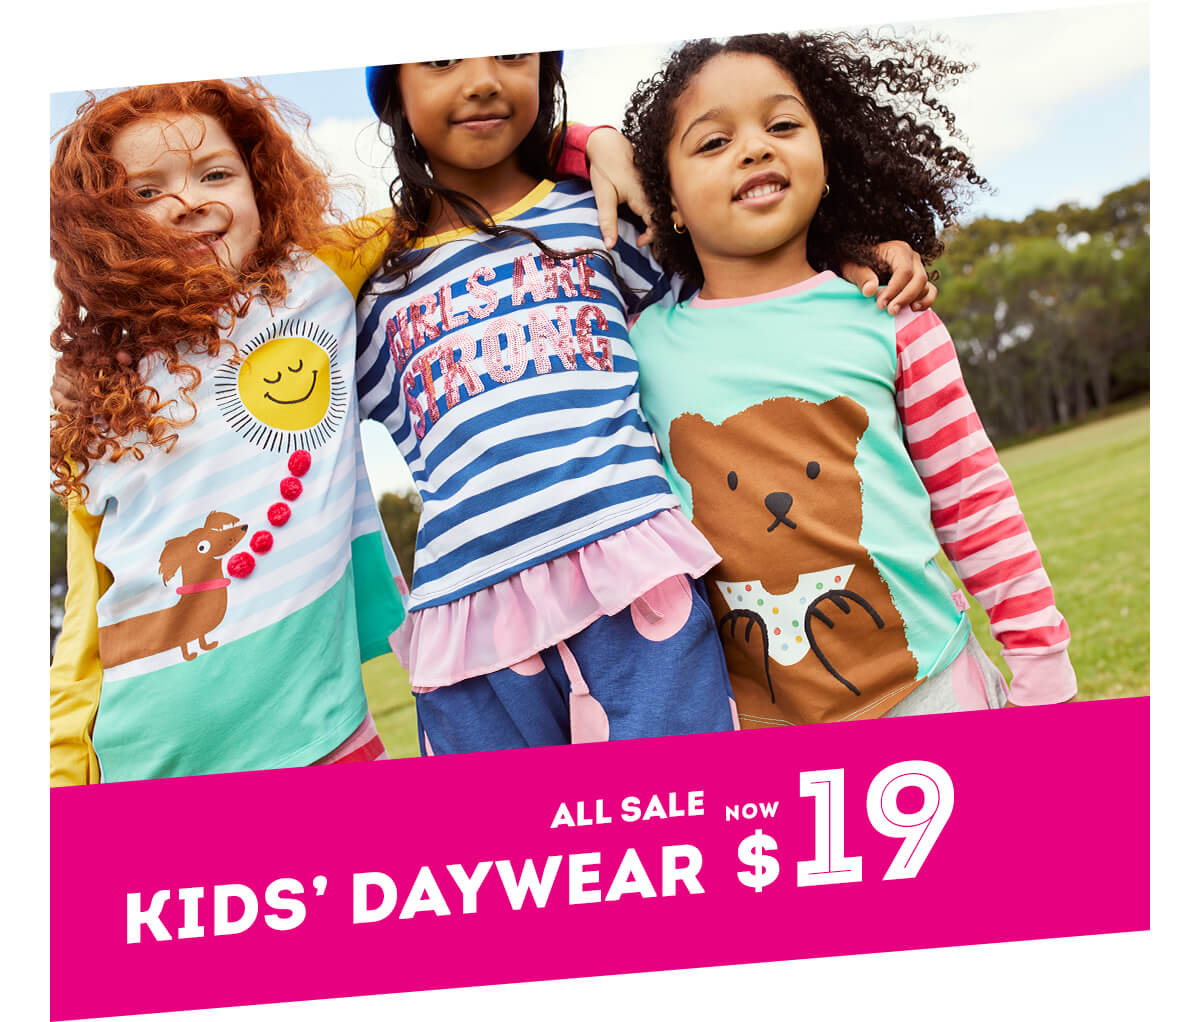 All Sale Kids' Daywear NOW $19